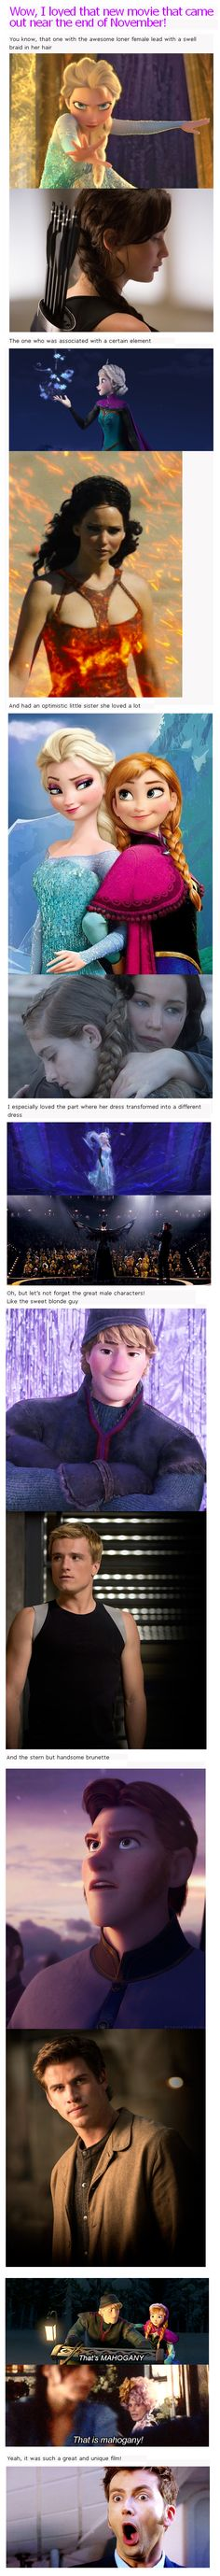 Frozen and The Hunger Games parallels!